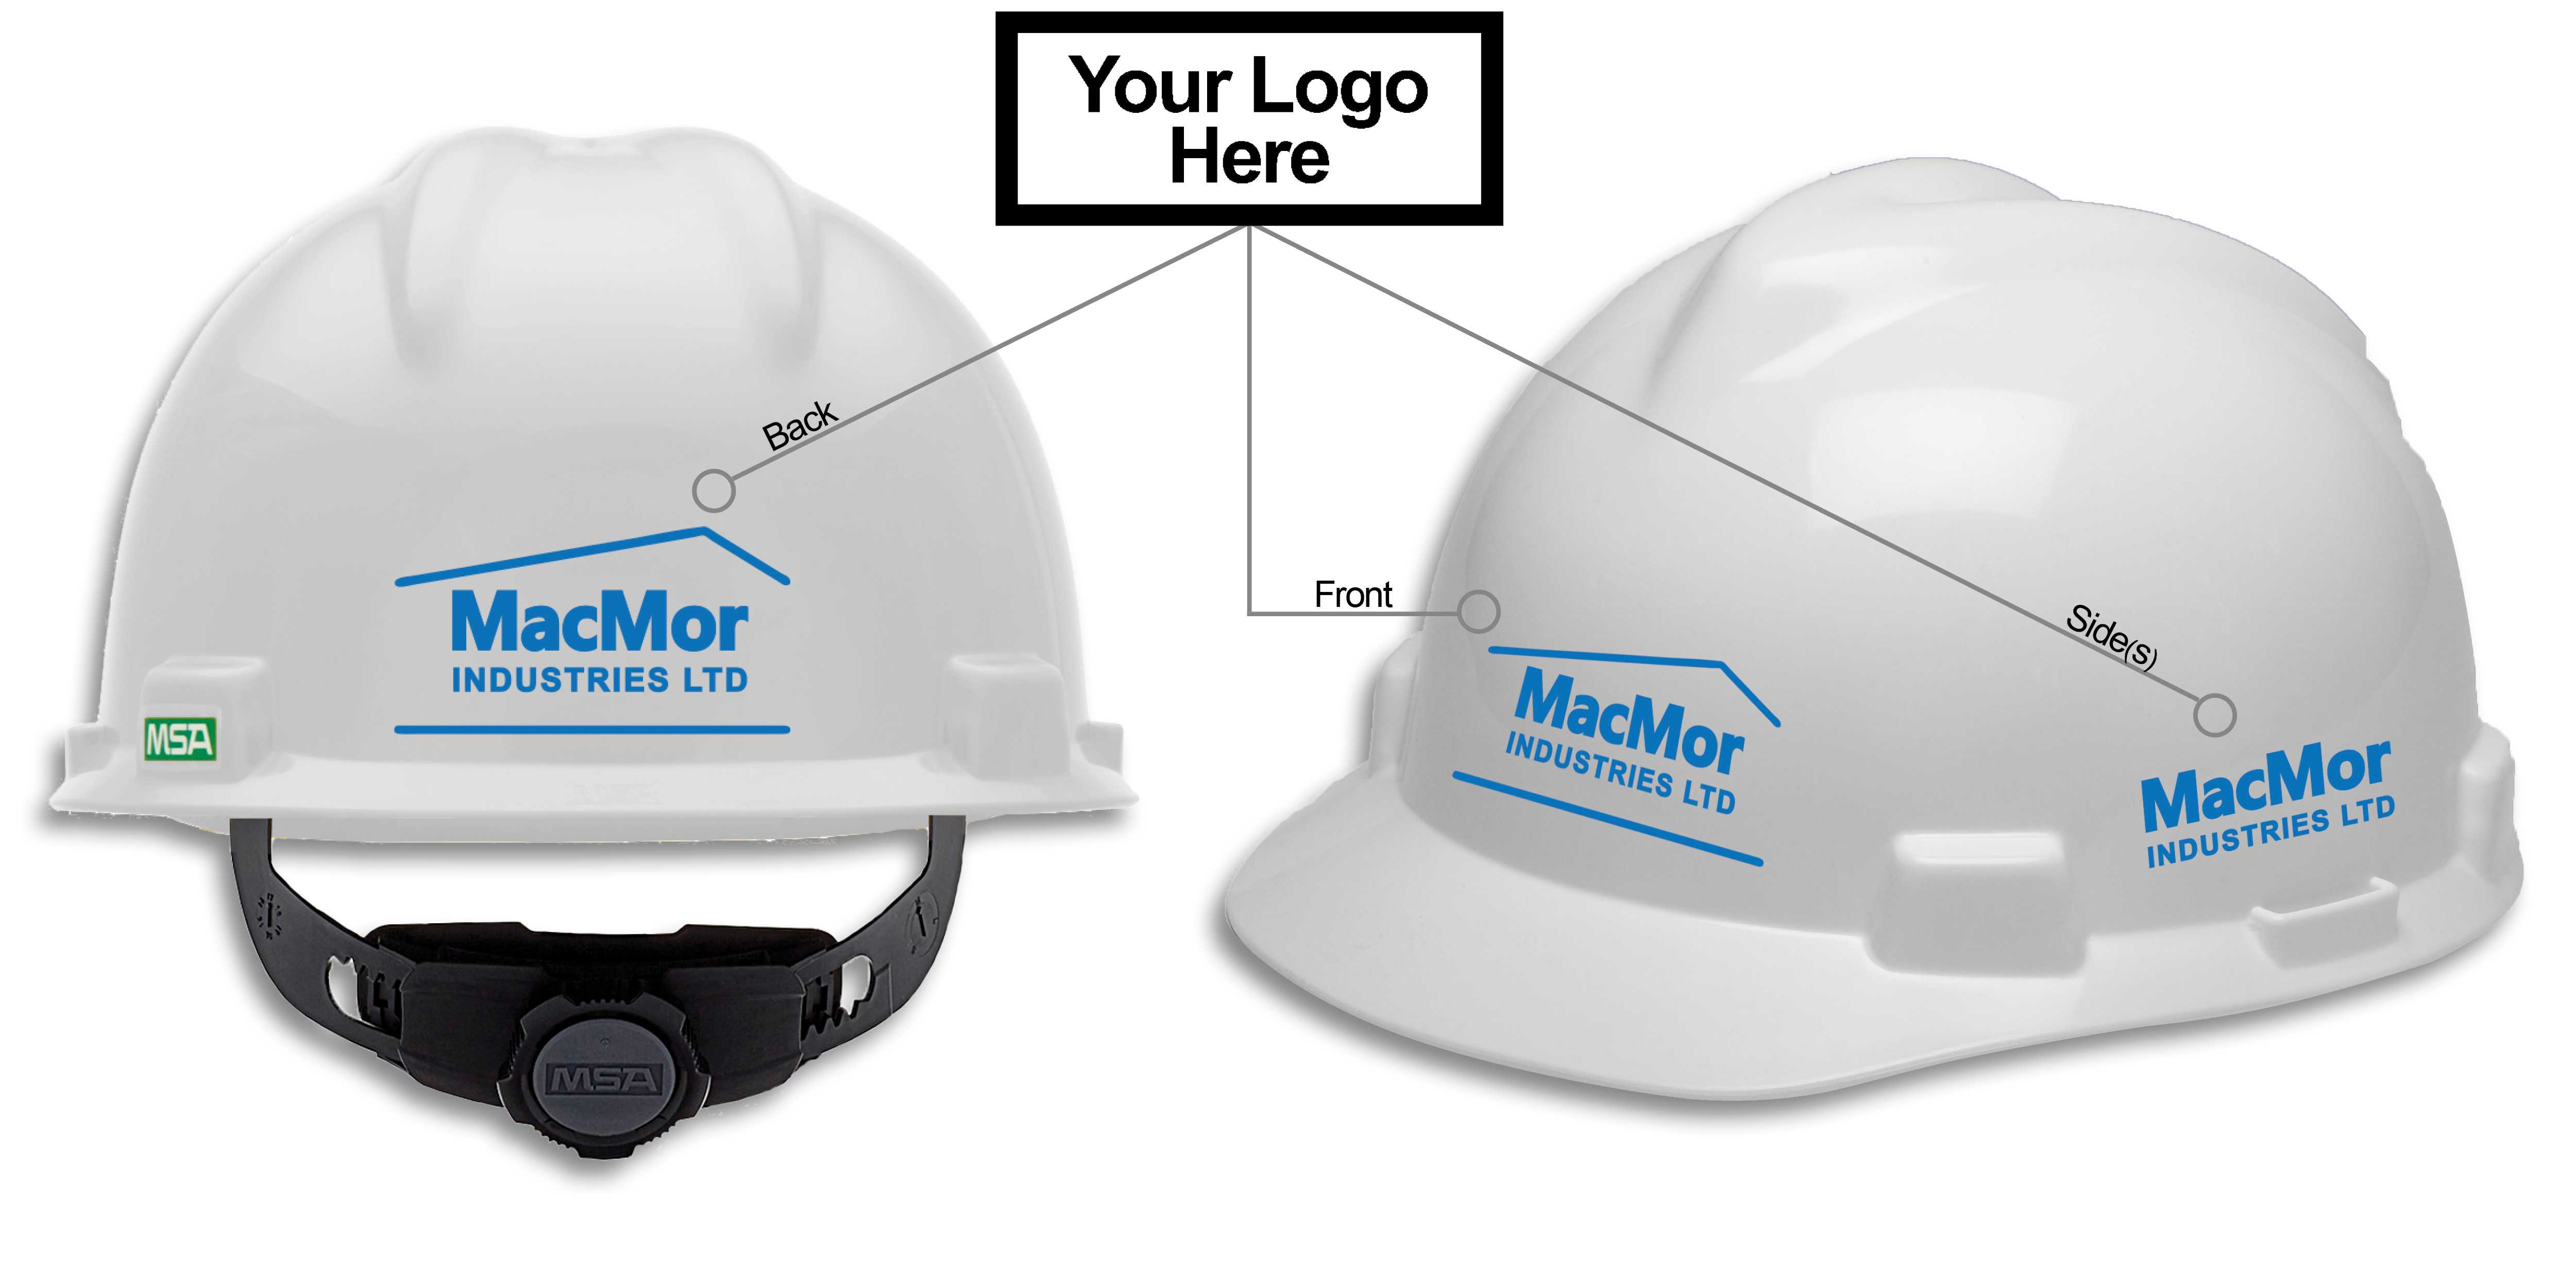 This image shows how MSA's hard hat logo promotion is customizable. Logoing available on the front back and both sides!